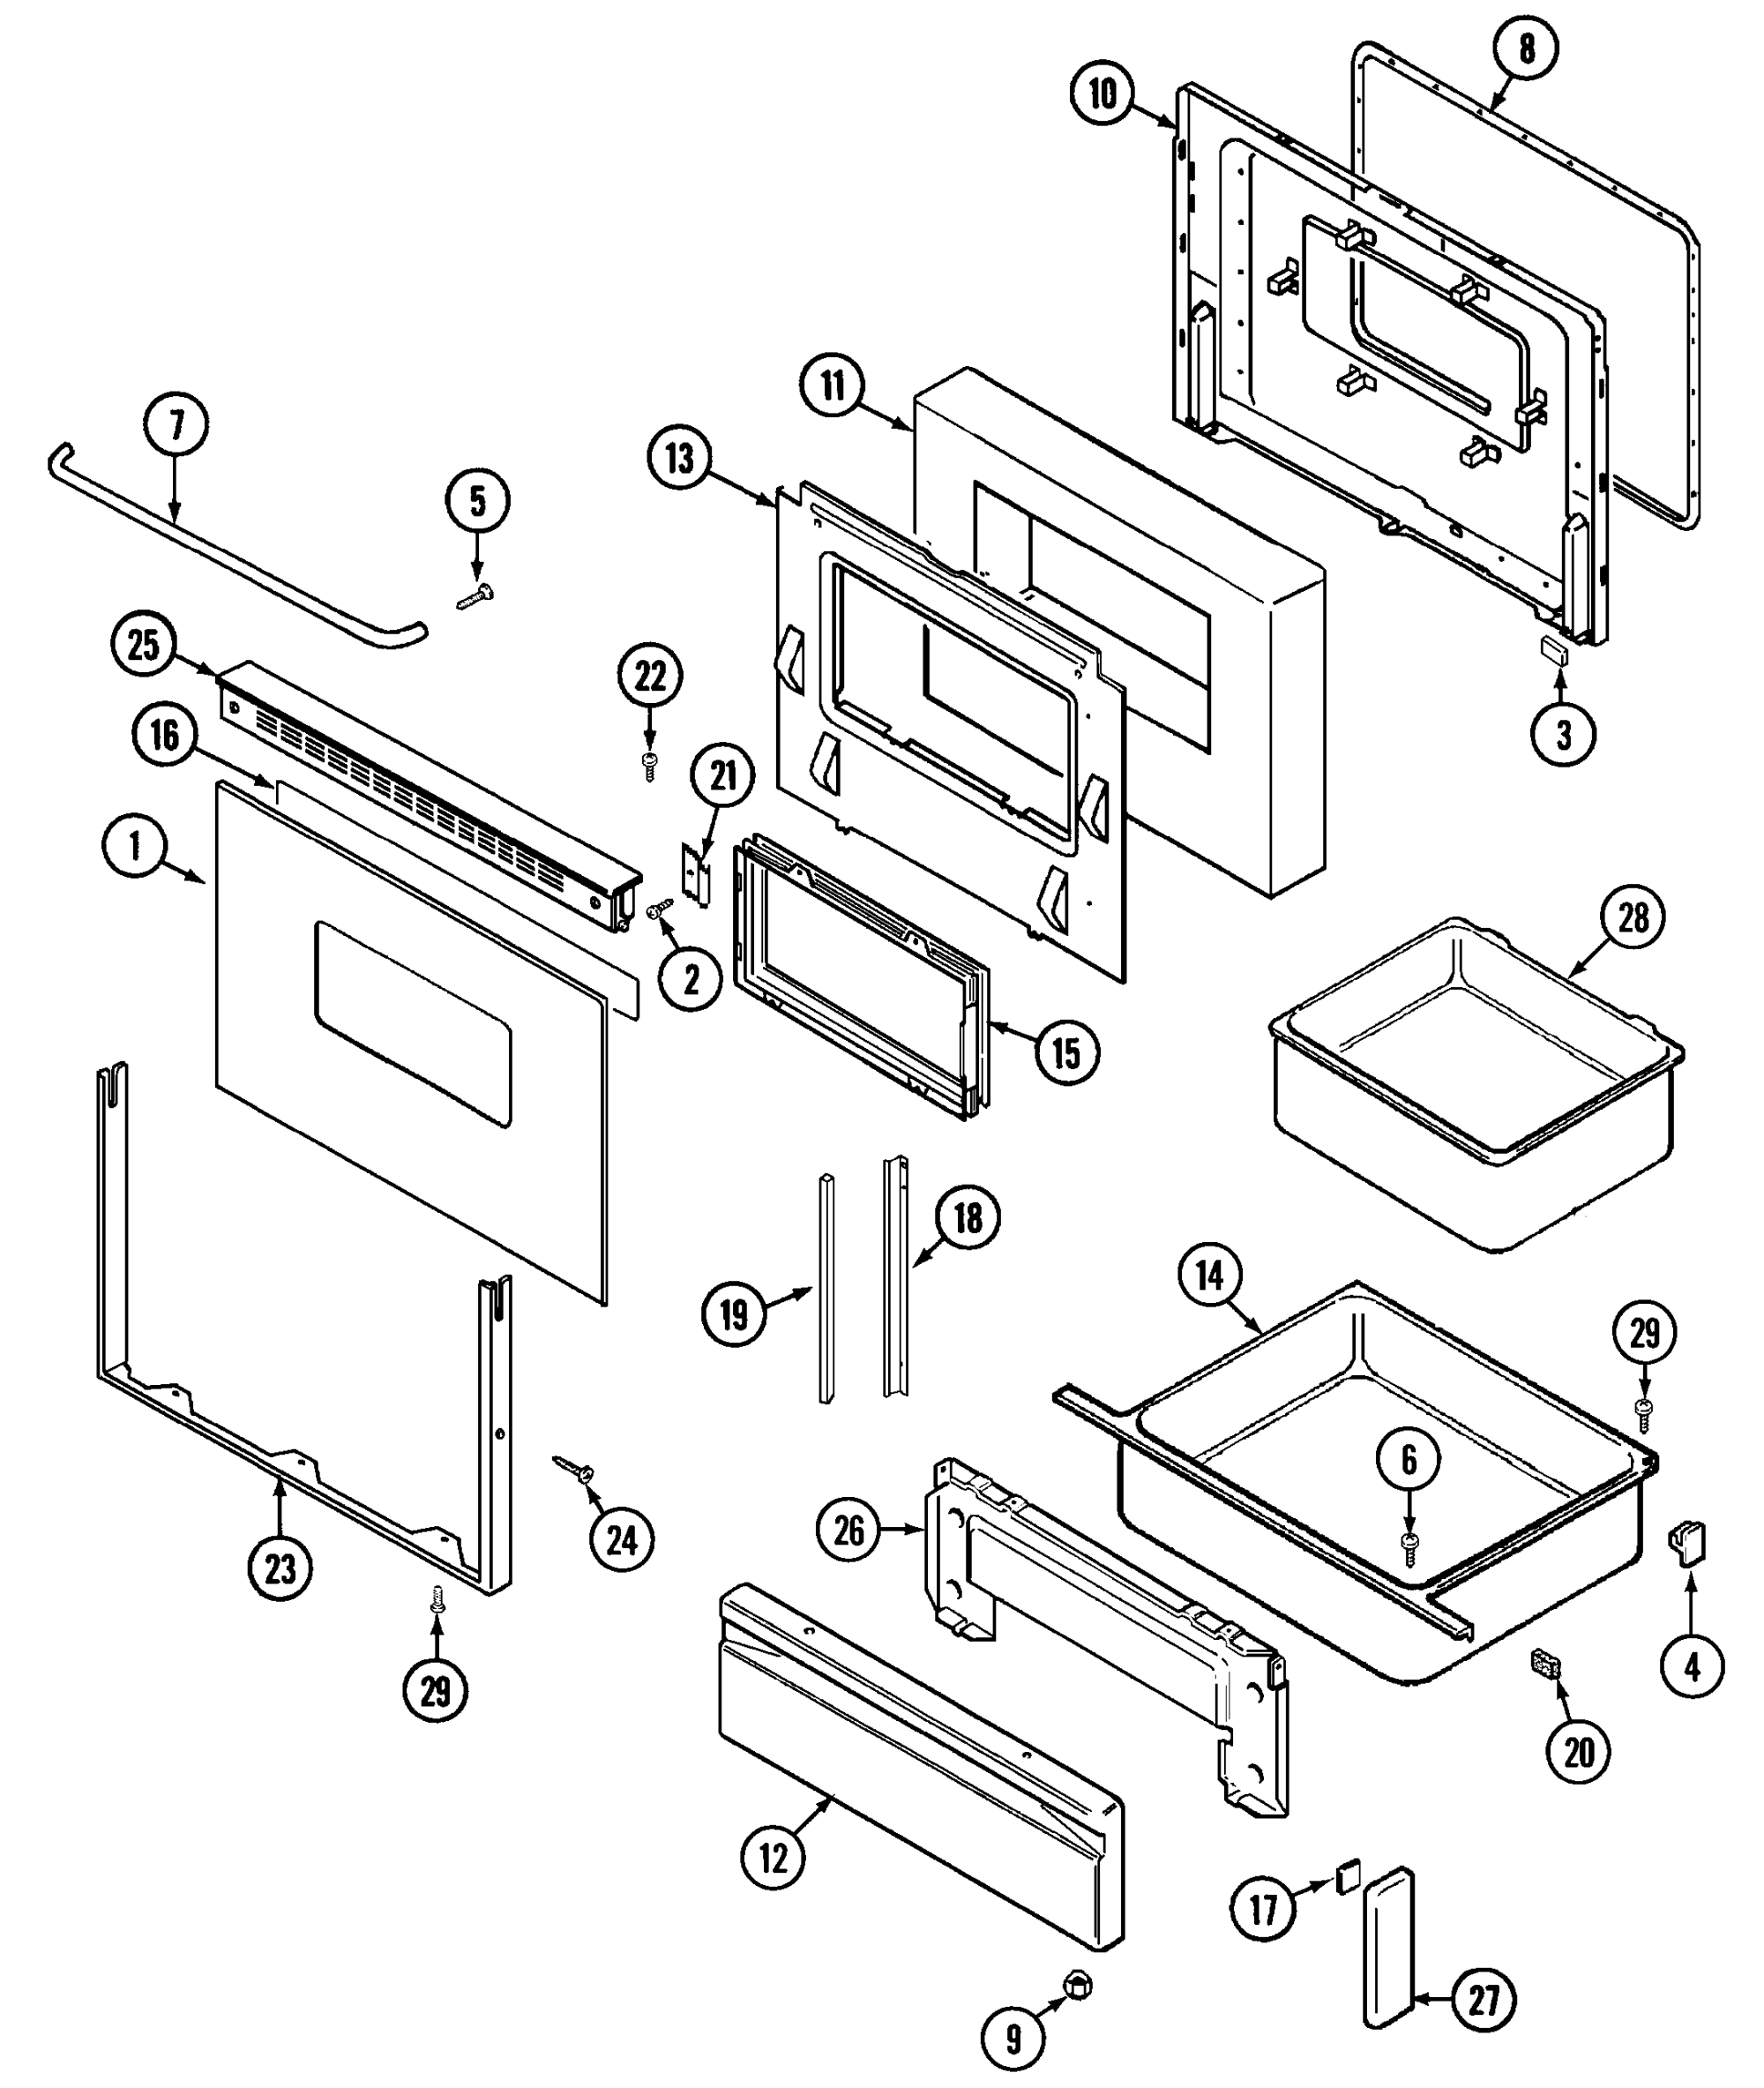 hight resolution of cre9400acl range door drawer parts diagram